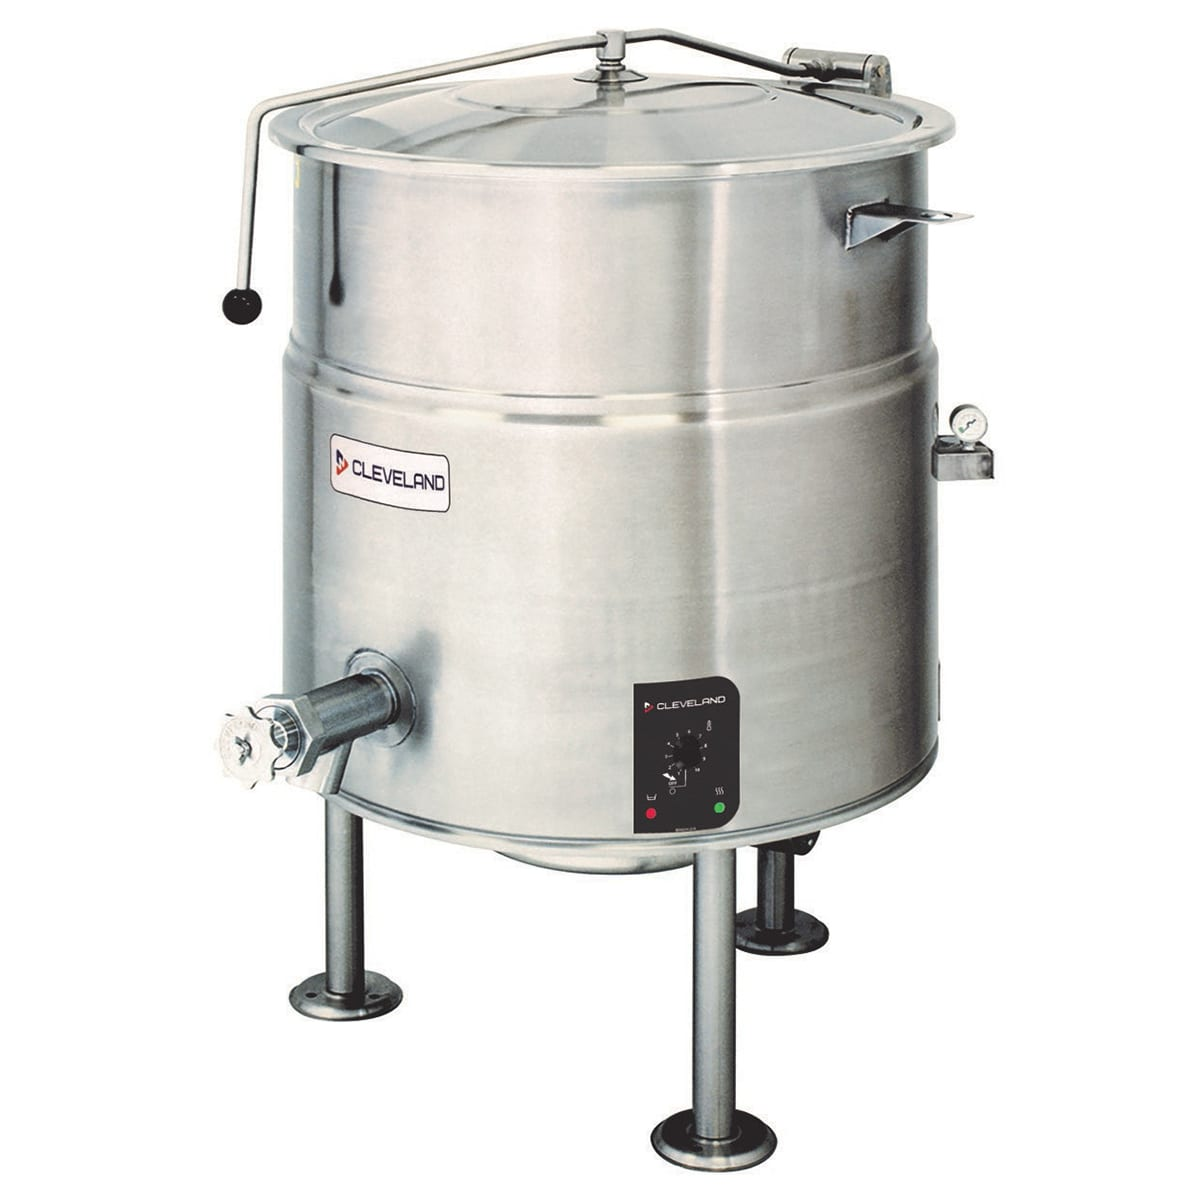 Cleveland KEL25 25-Gallon Kettle w/ Open Tri-Leg Base, 2/3 Jacket, 208v/3ph